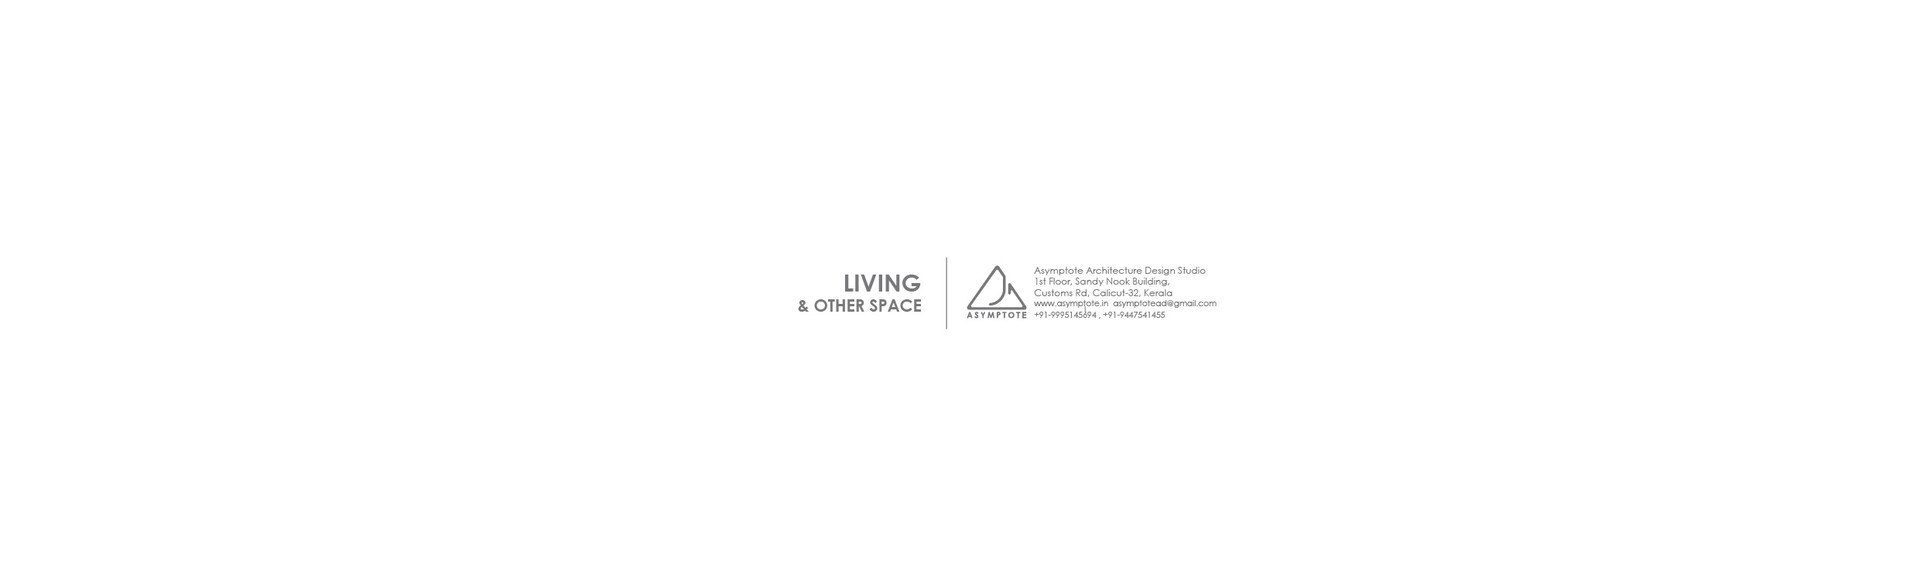 LIVING AND OHTER SPACES-01.jpg